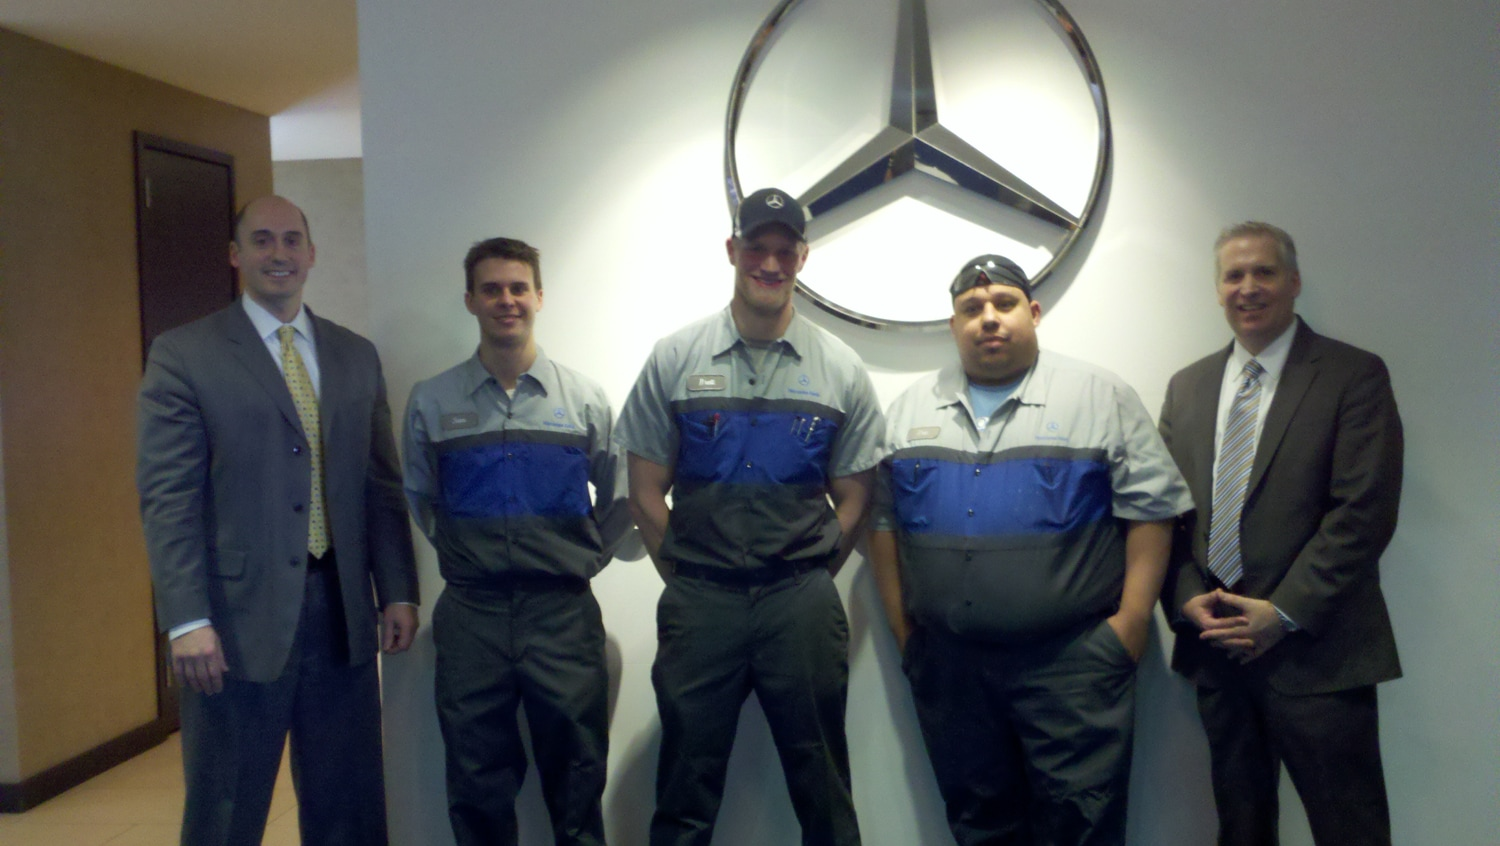 Mercedes benz authorized service technician for Mercedes benz of hanover staff